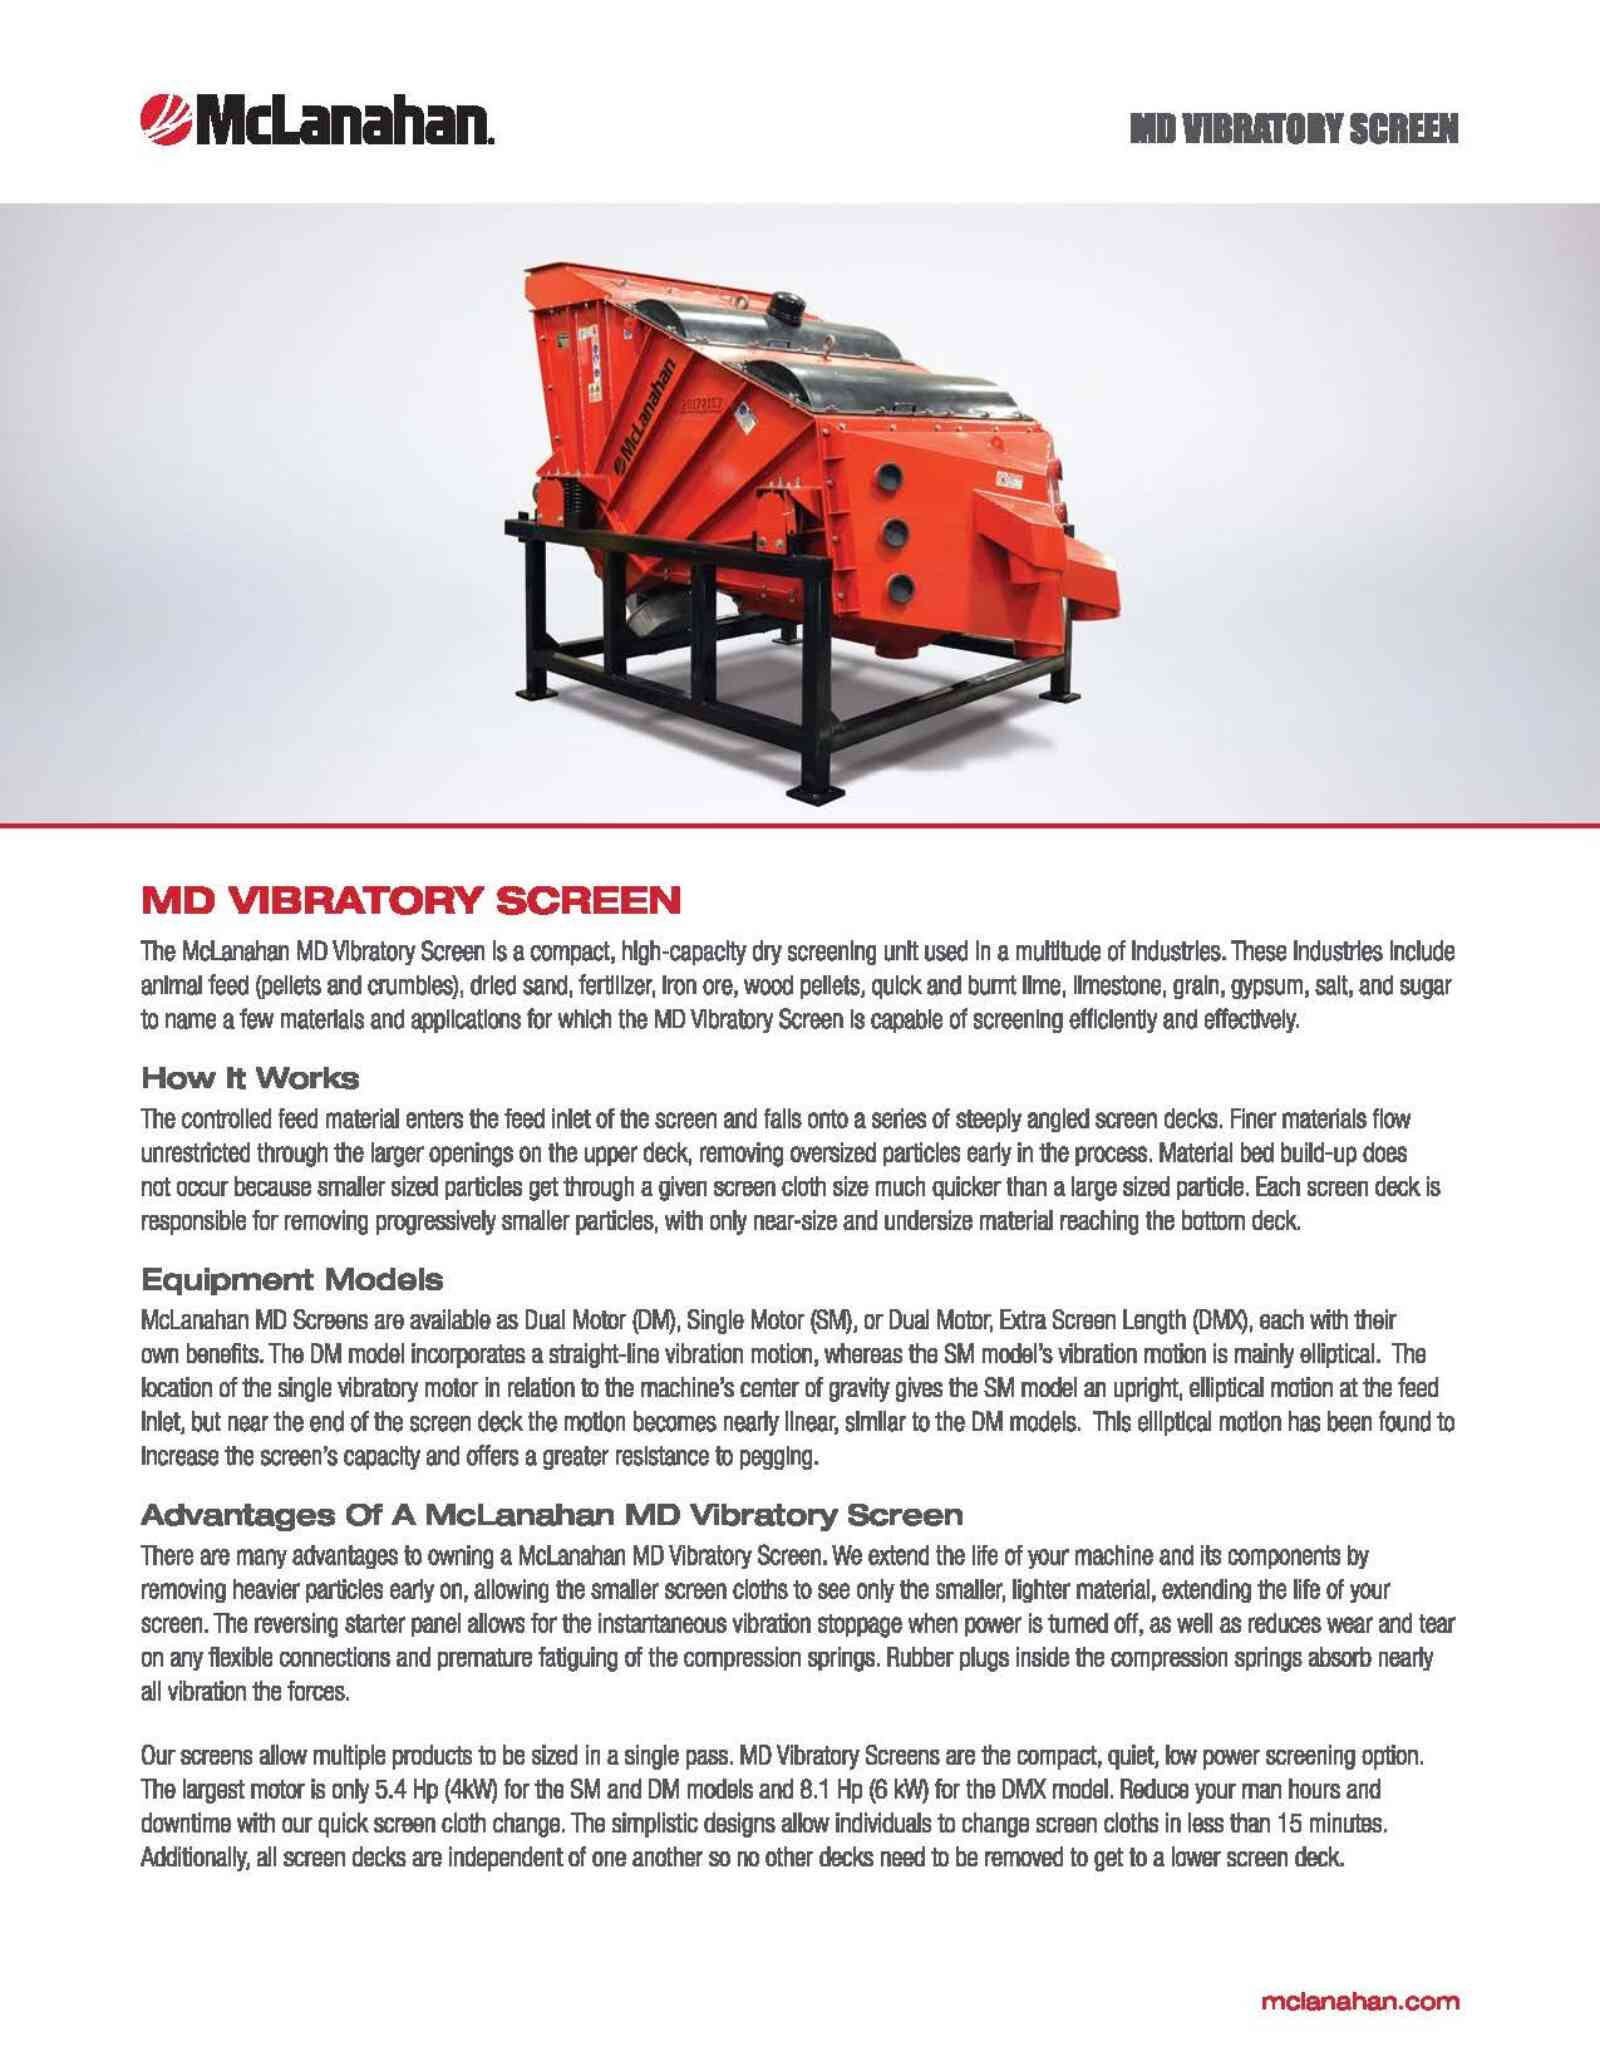 Md Vibratory Screen Brochure Image Page 1